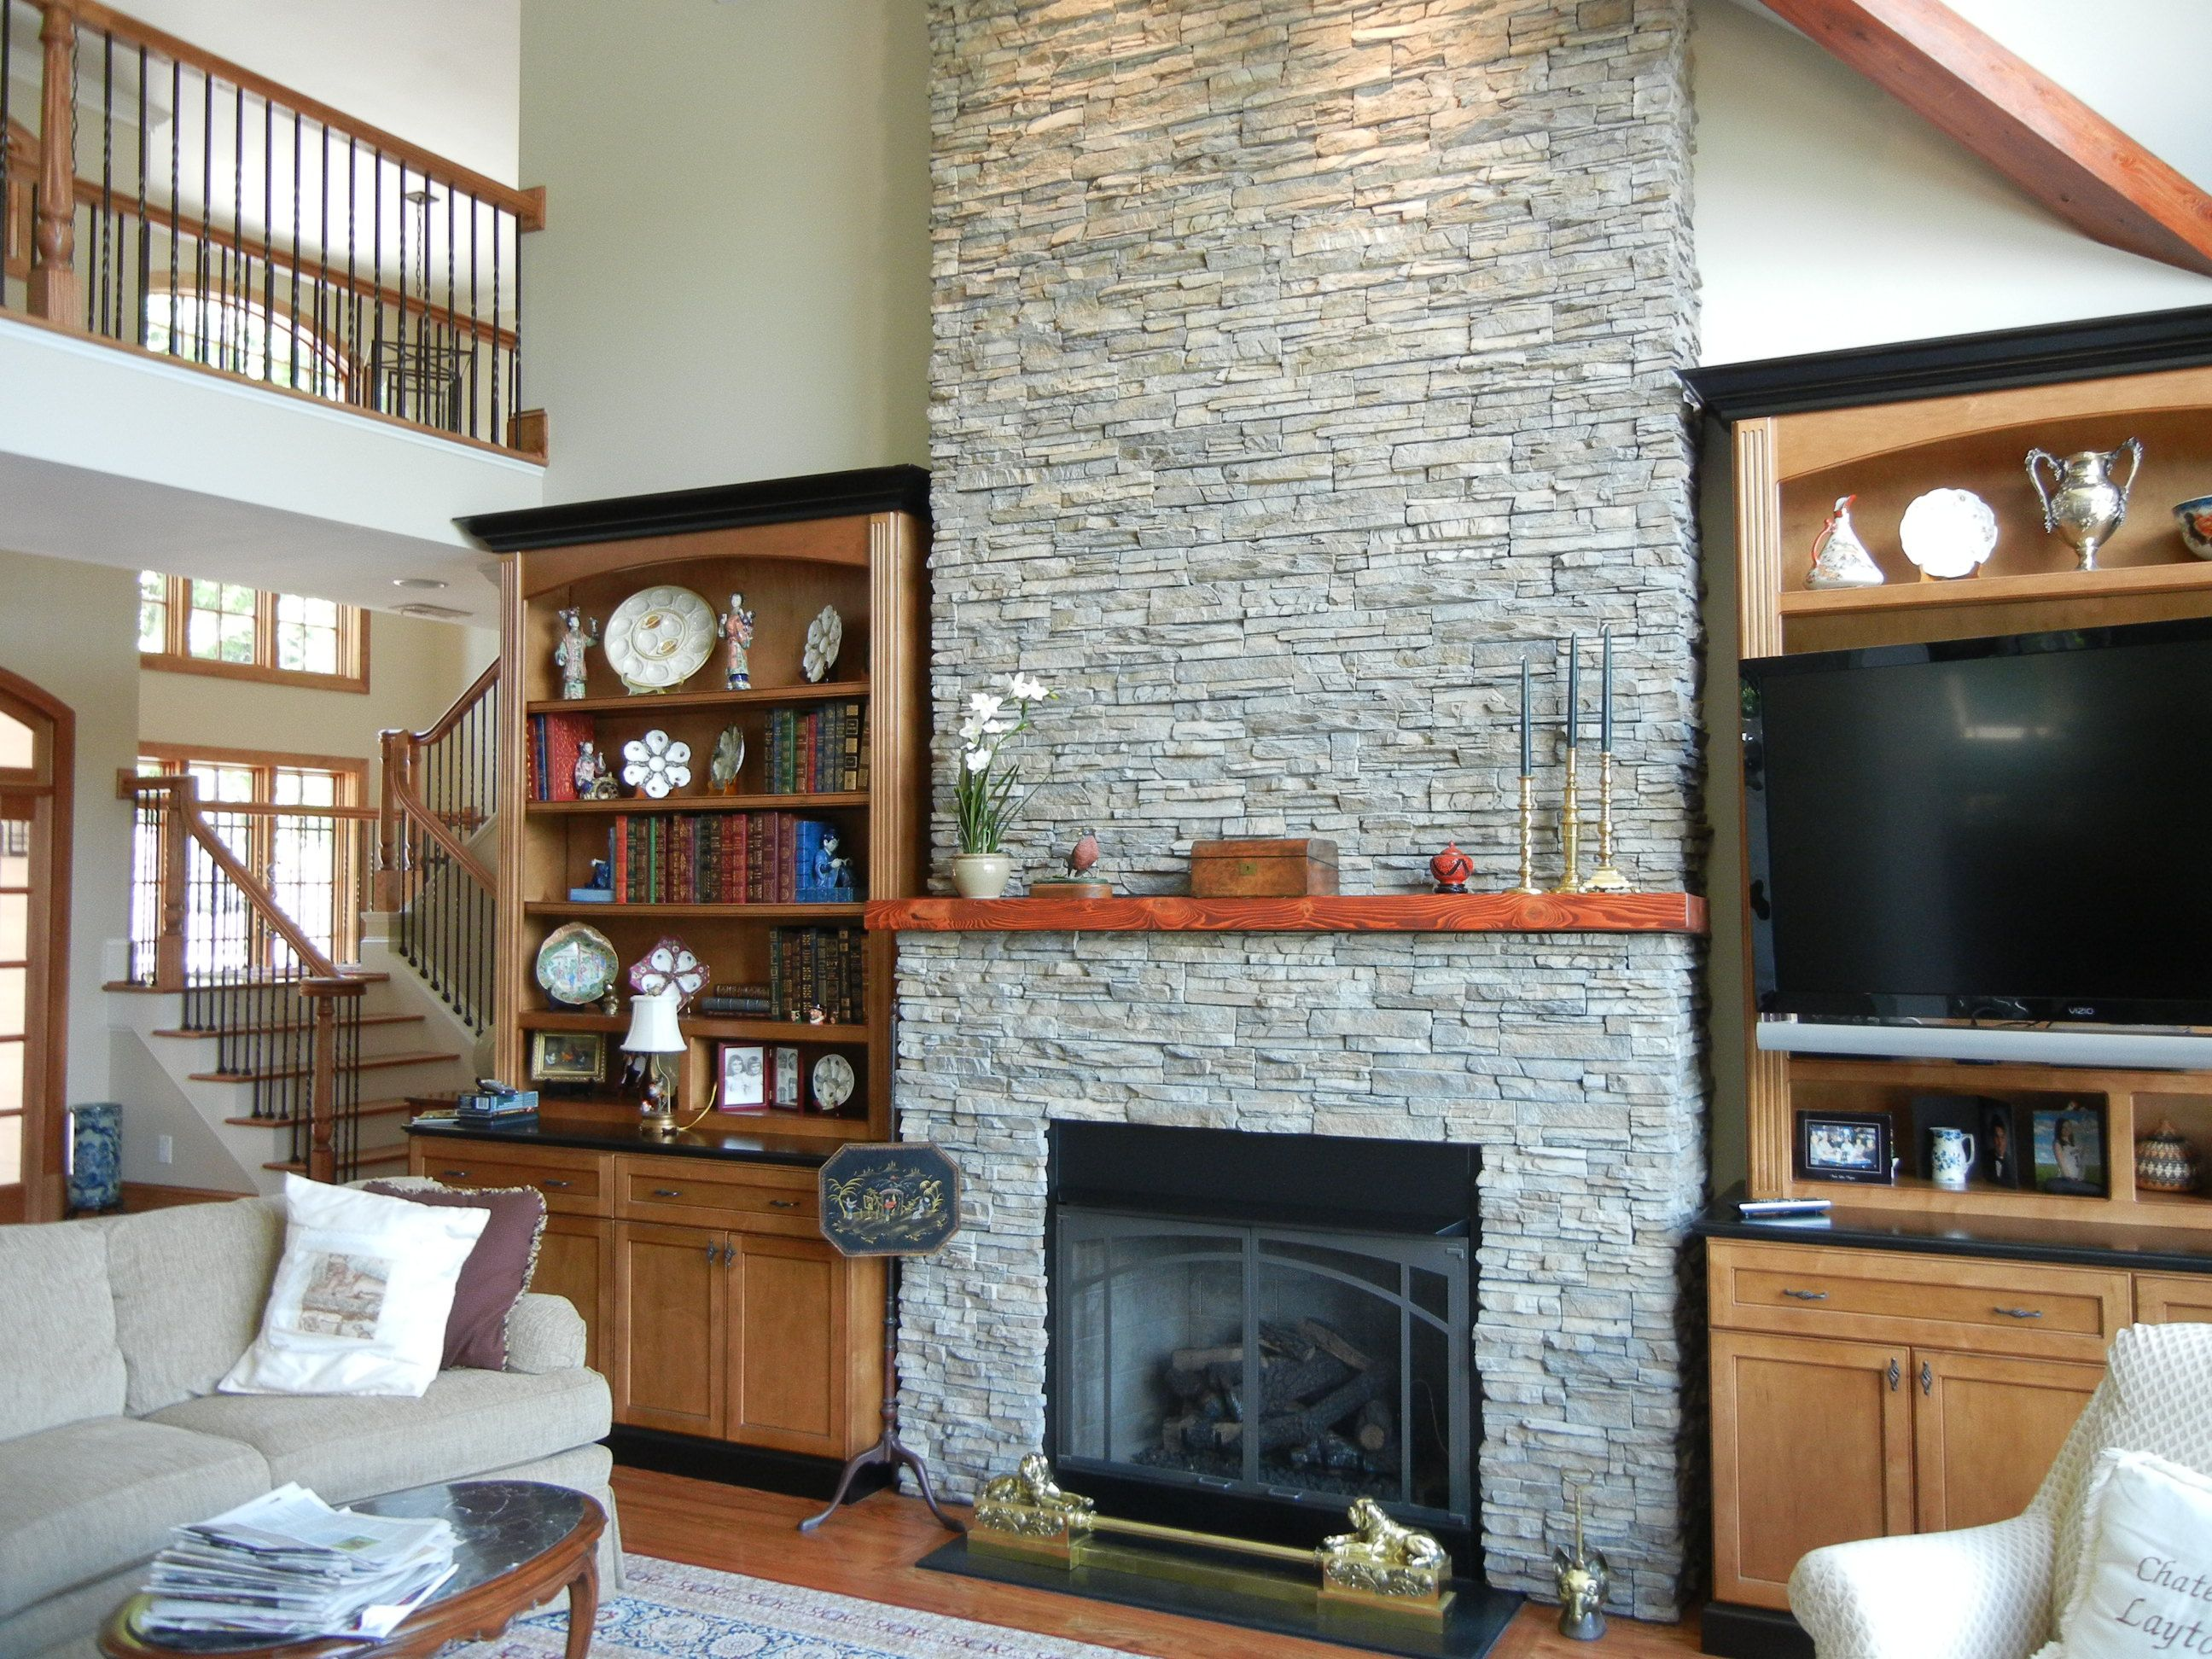 stone fireplace surrounded by built in bookshelves creates a lovely